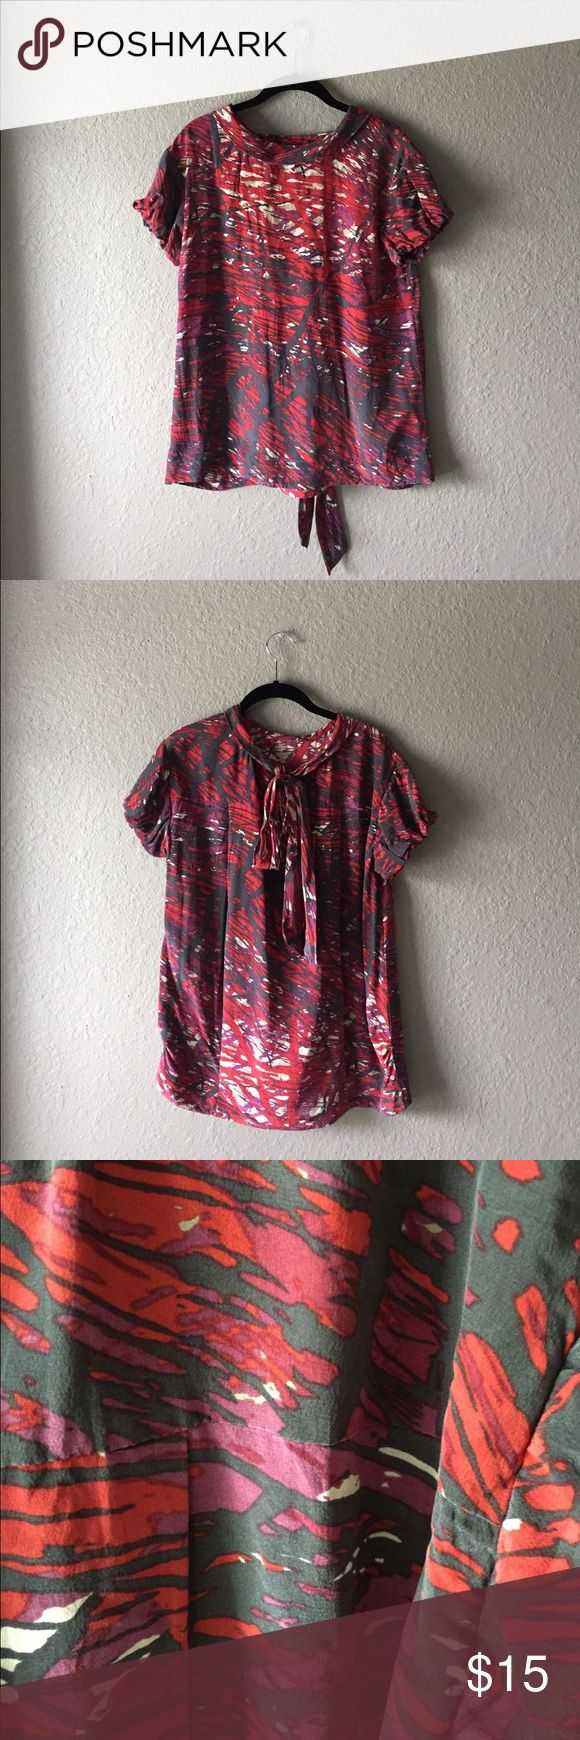 BCBGMAXAZRIA Top Fun abstract print in a light and airy fabric. Perfect condition! BCBGMaxAzria Tops Blouses